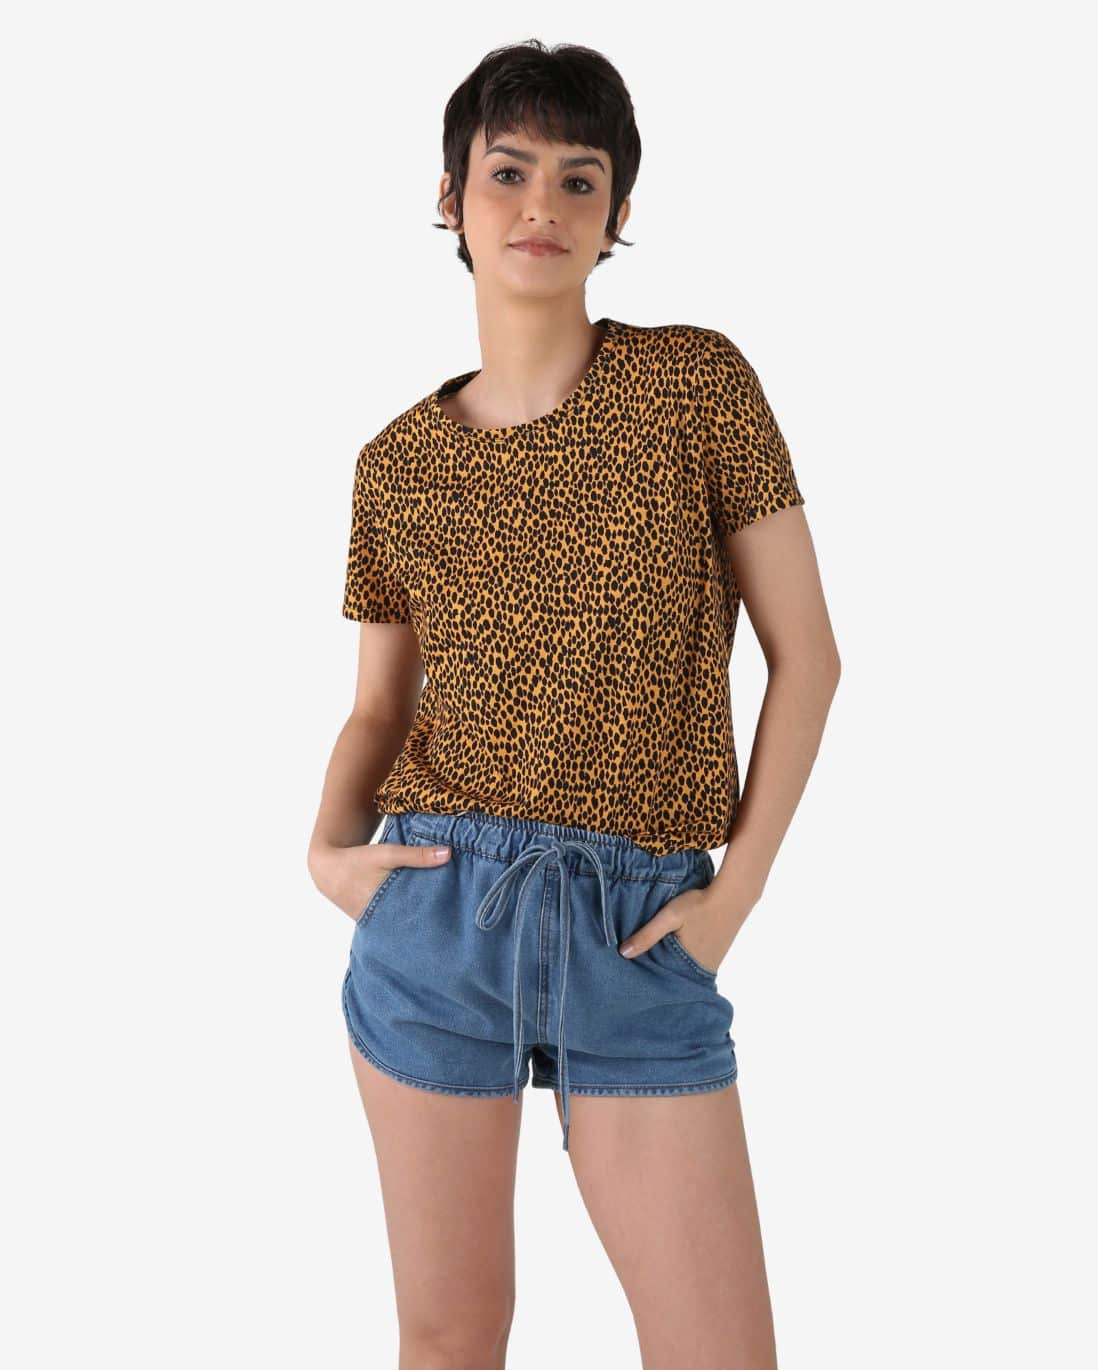 Camiseta Animal Print - Amarelo/Preto